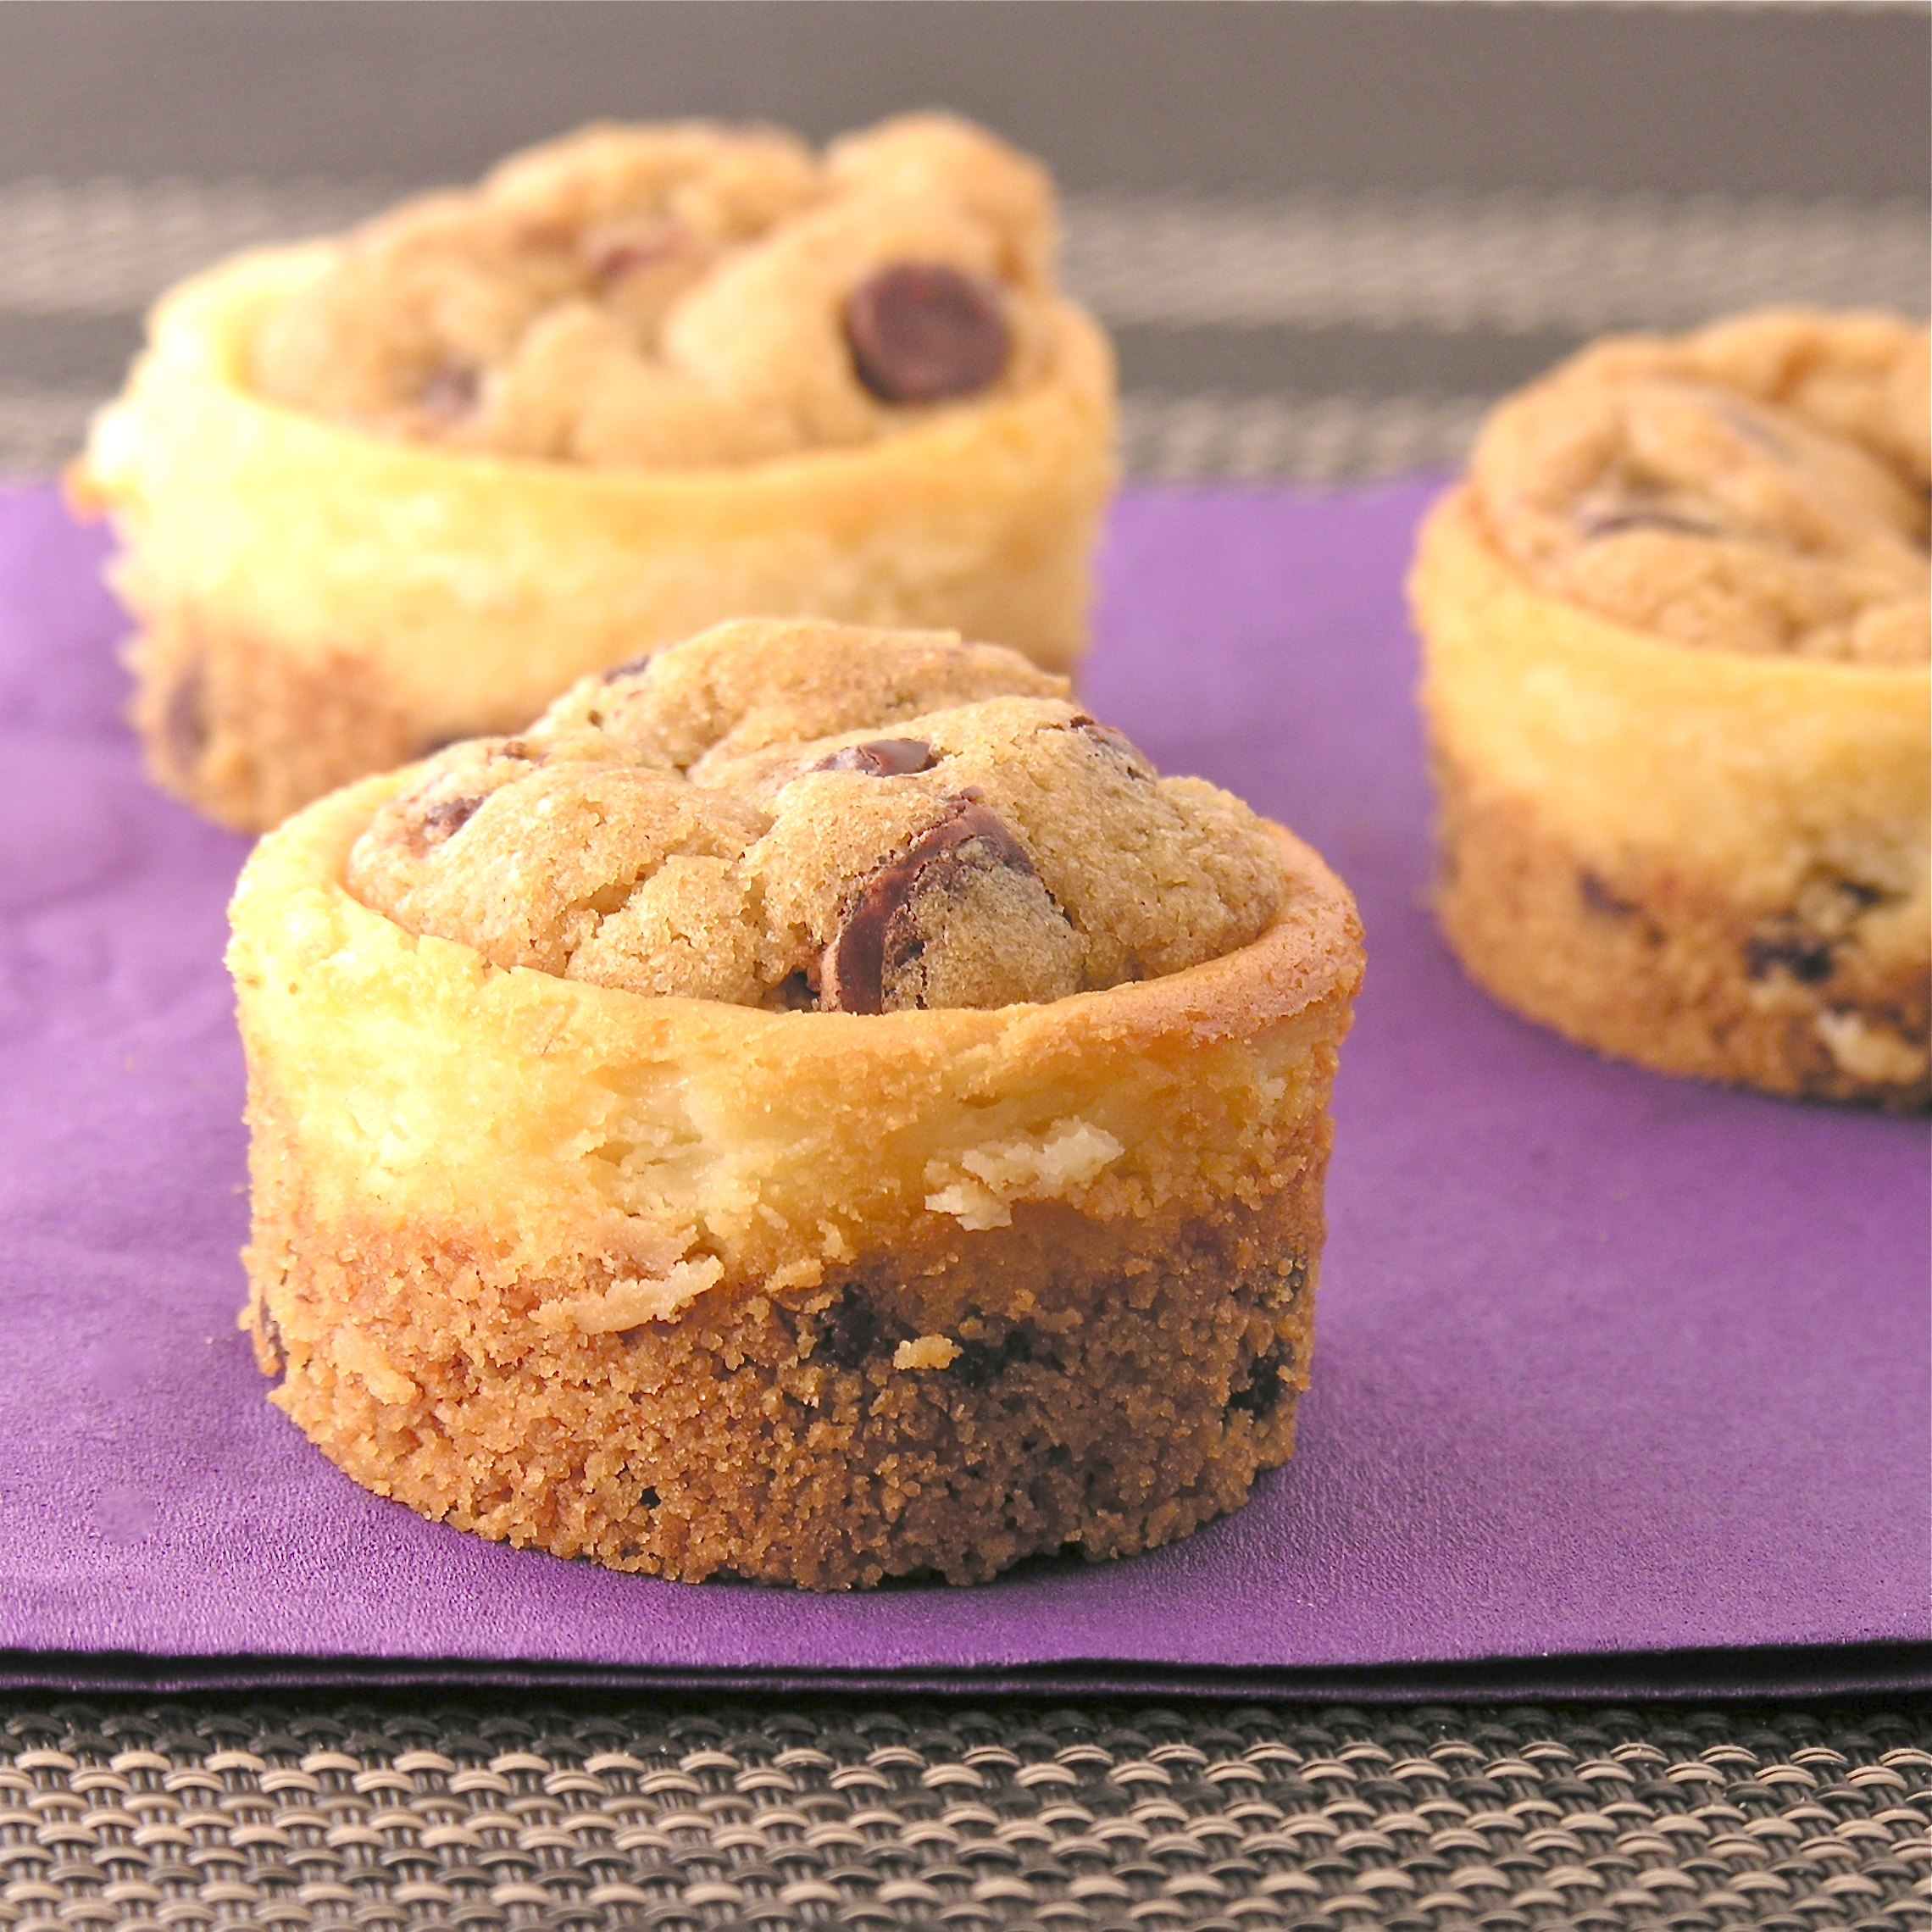 These yummy little cheesecakes have chocolate chips in the crust and ...